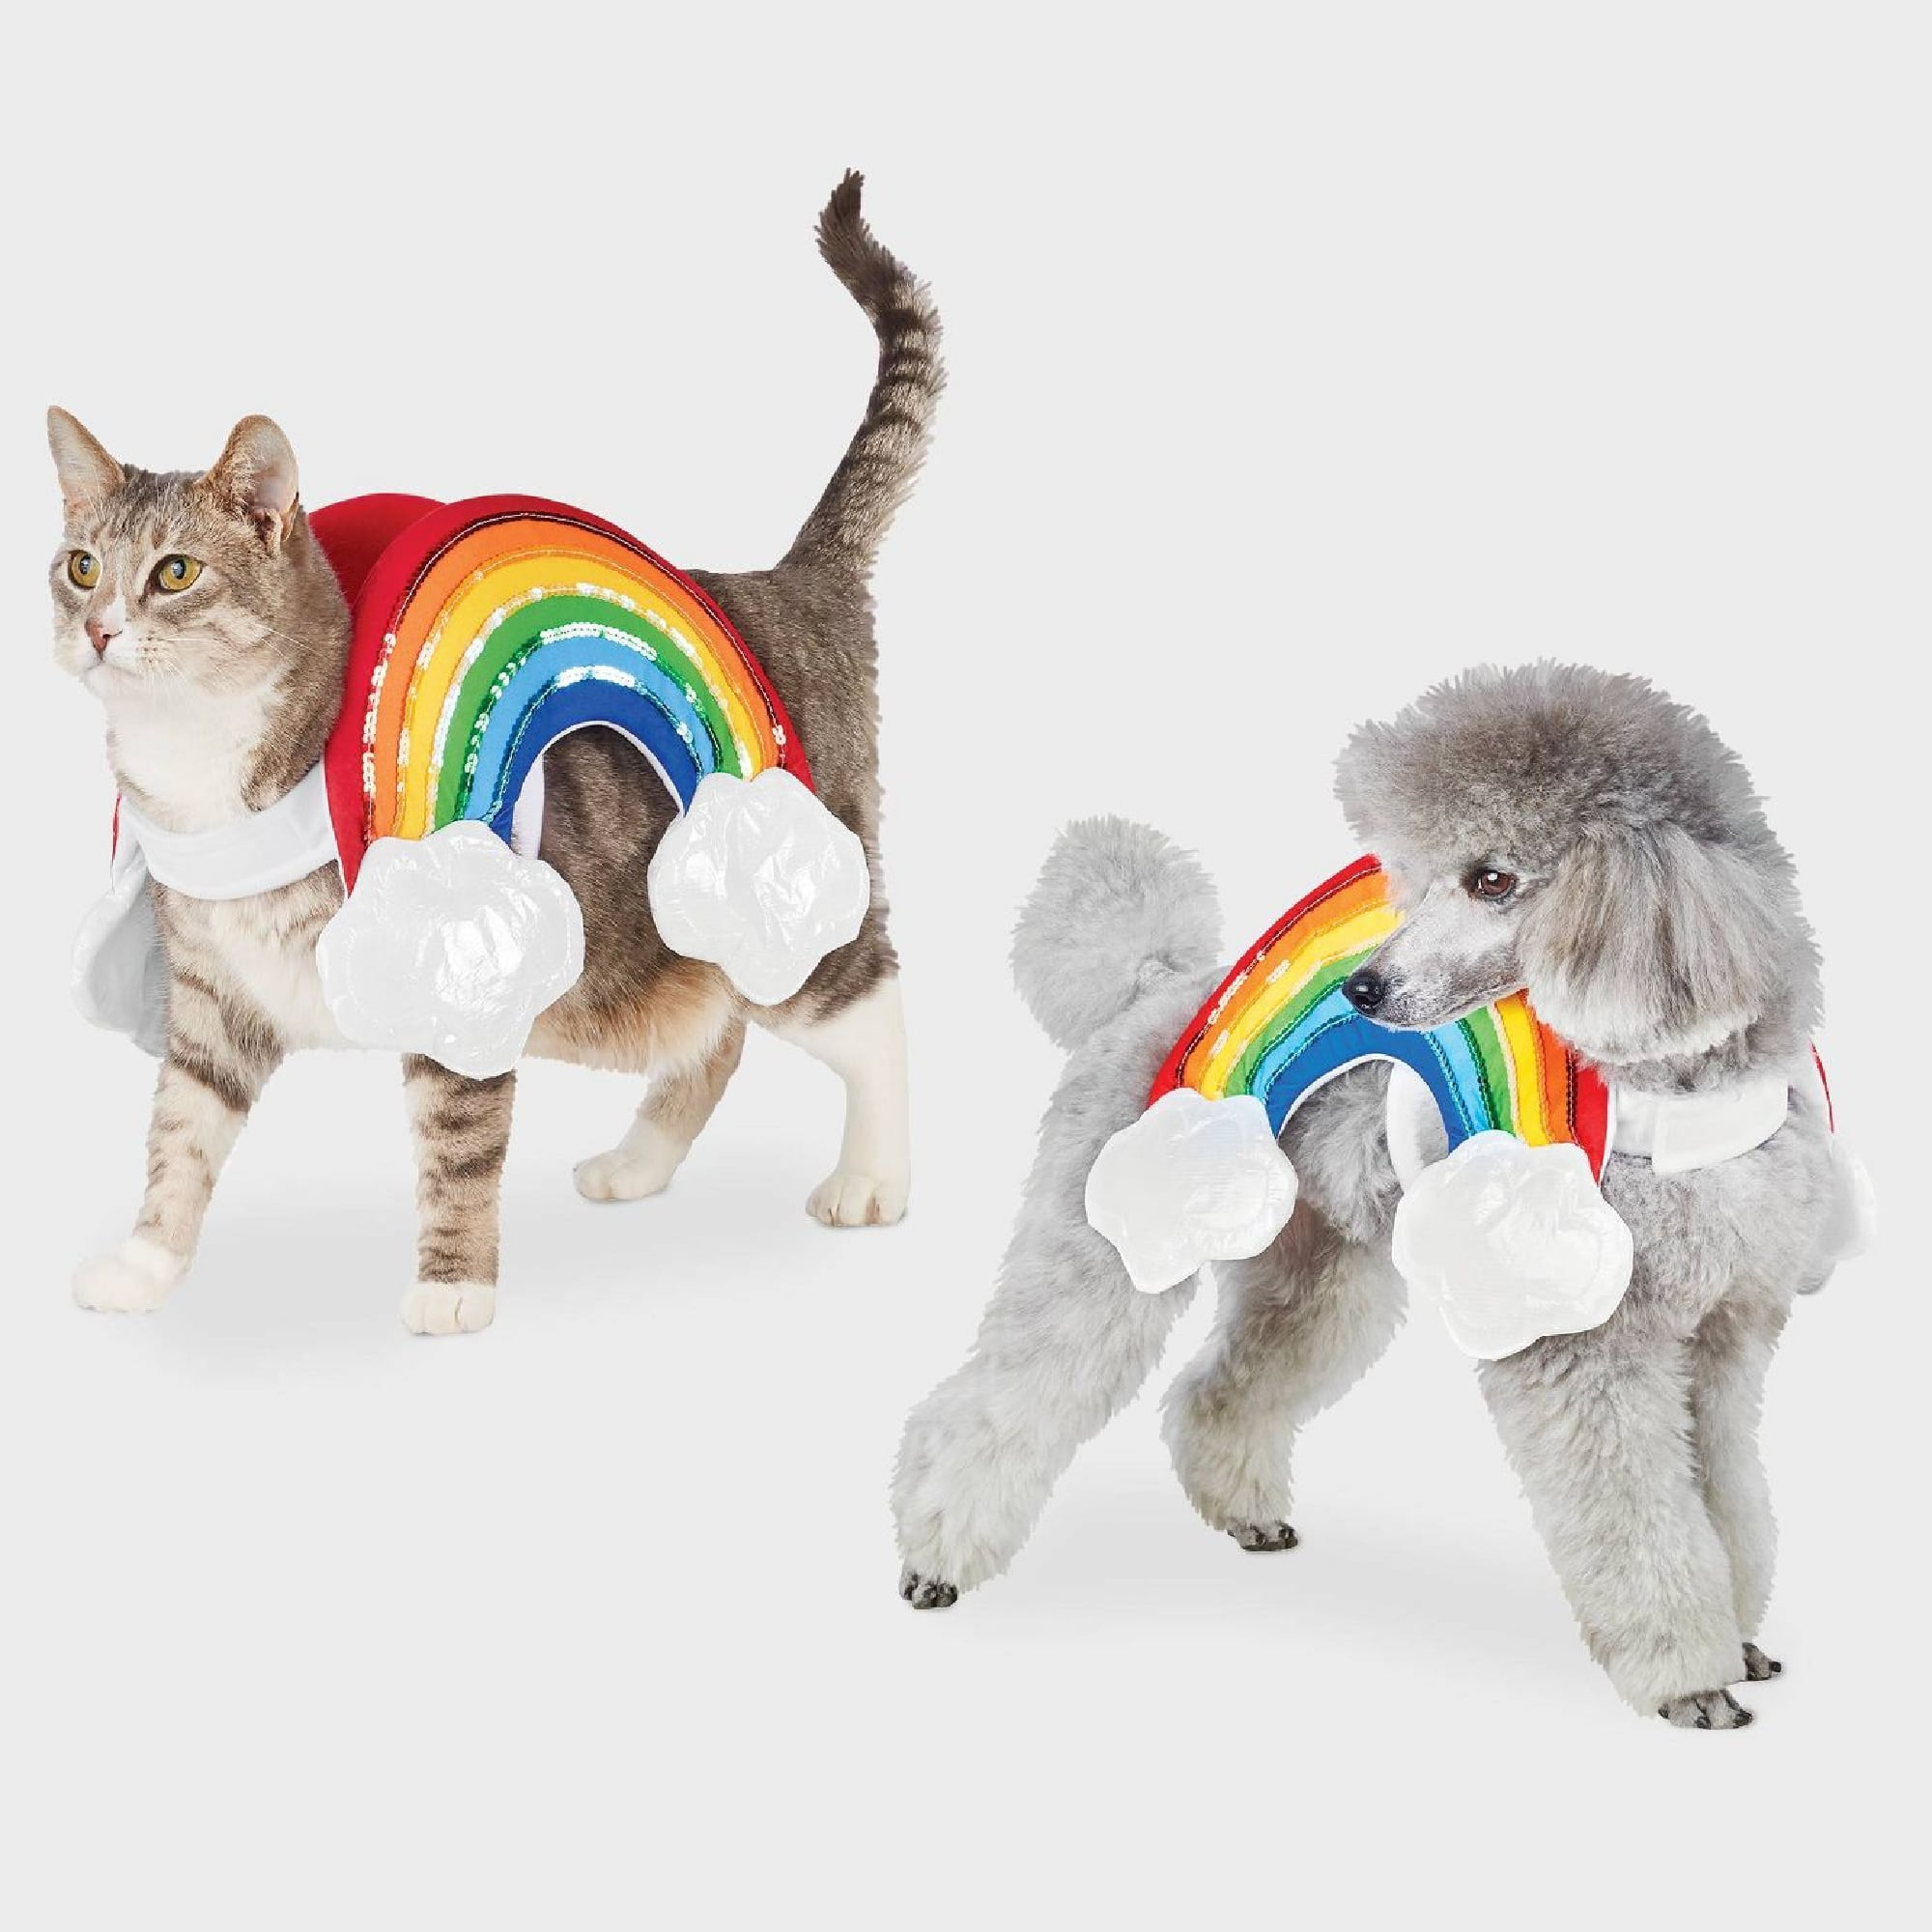 Halloween 2020 Pet Pet Halloween Costumes For Cats and Dogs at Target 2020 | POPSUGAR